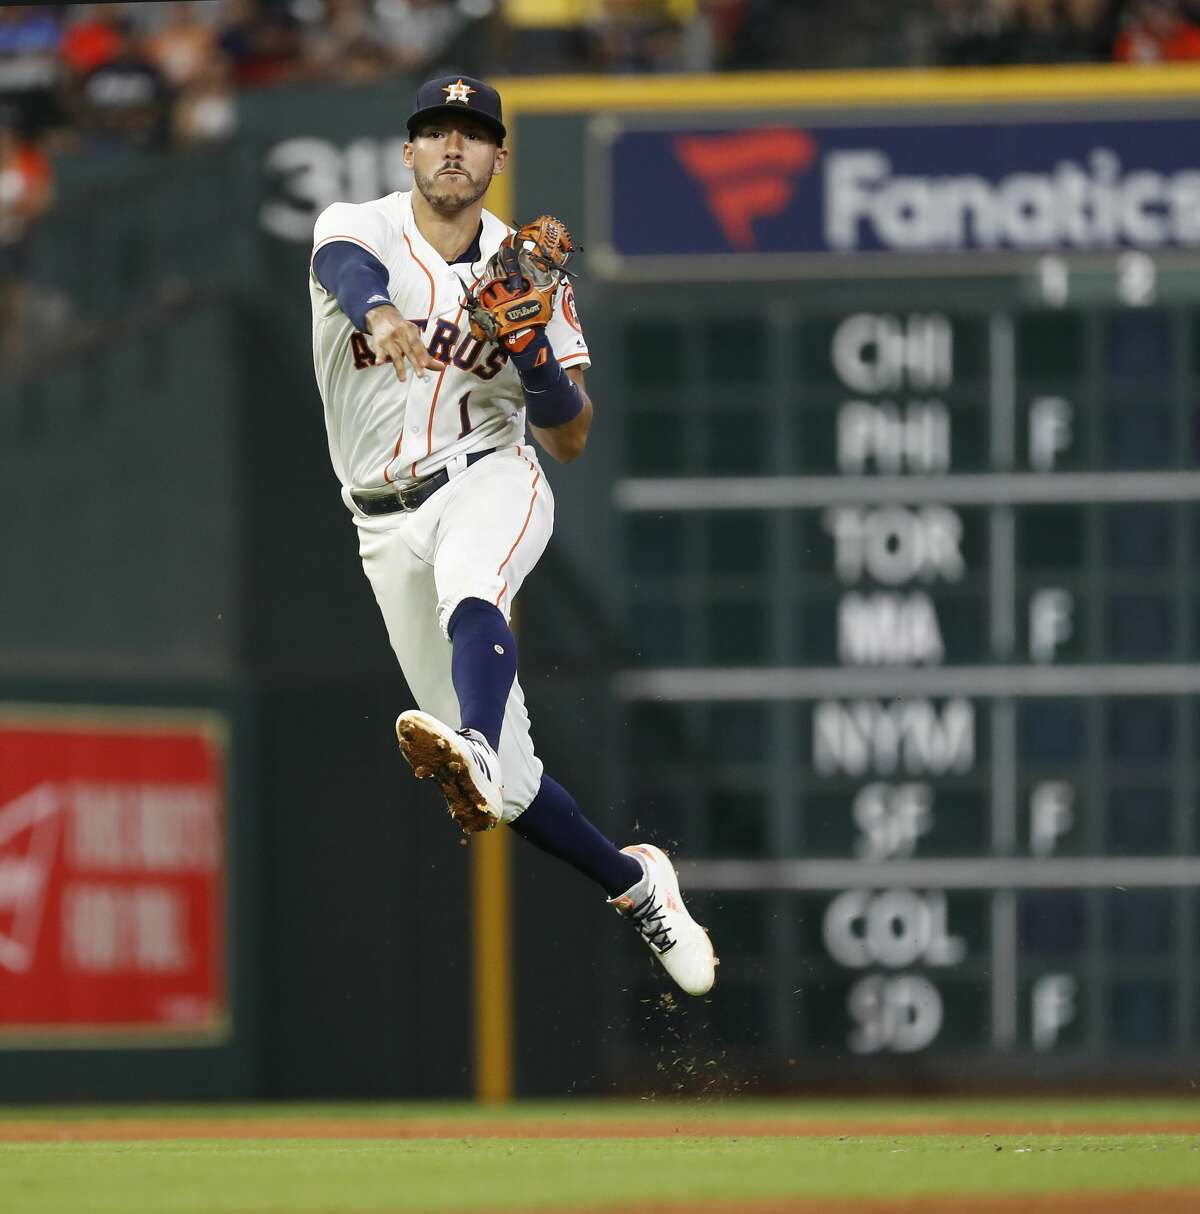 Houston Astros Carlos Correa (1) jumps up to make the throw to first as Los Angeles Angels David Fletcher (6) ground out during the fifth inning of an MLB baseball game at Minute Maid Park, Sunday, September 2, 2018, in Houston.